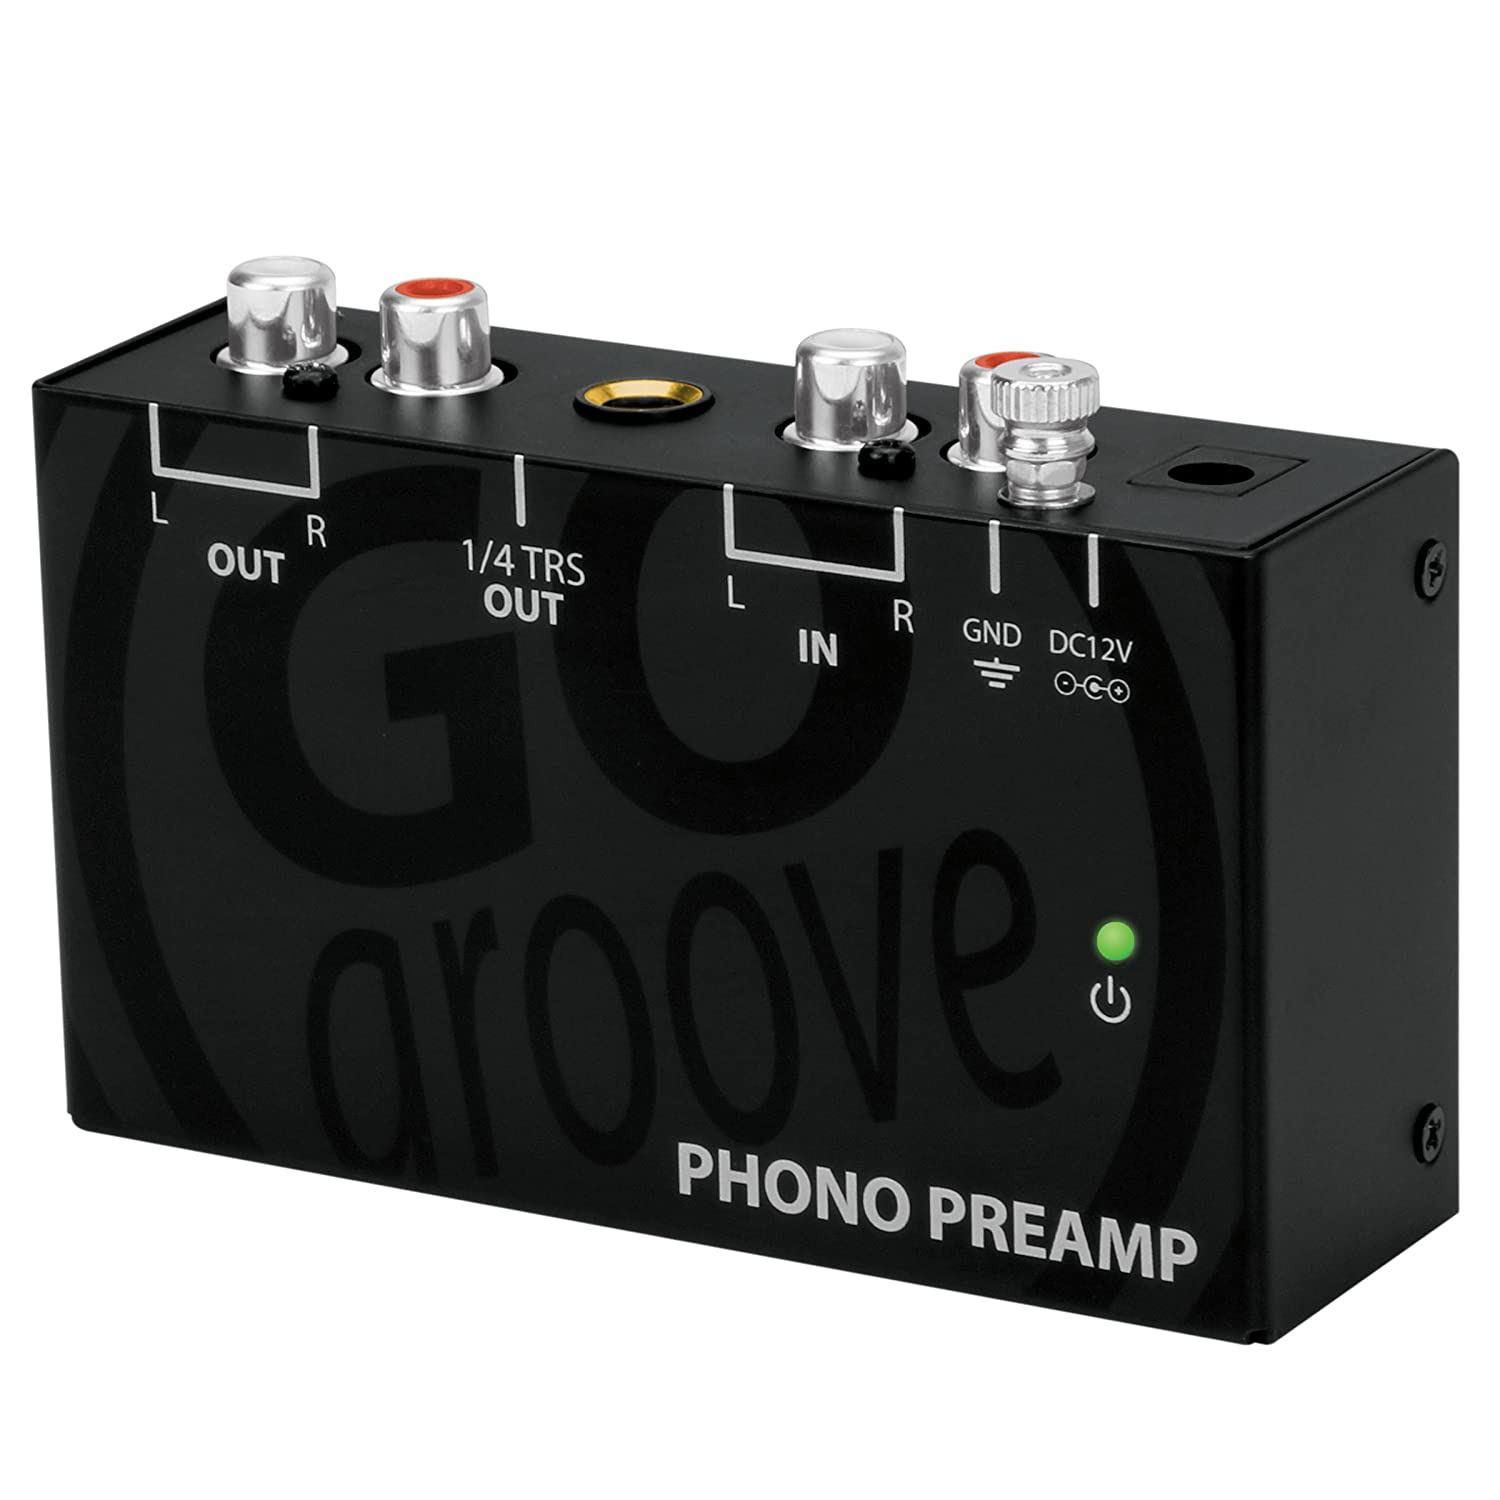 Mini Turntable Phono Preamp for Bookshelf Speakers by GOgroove - Preamplifier Connects to AOMAIS , Edifier , Klipsch , Mackie , Micca , Pioneer , Sony , Monoprice and More Bookshelf Speakers Accessory Power GGAAPPA100BKUS-AGBAG